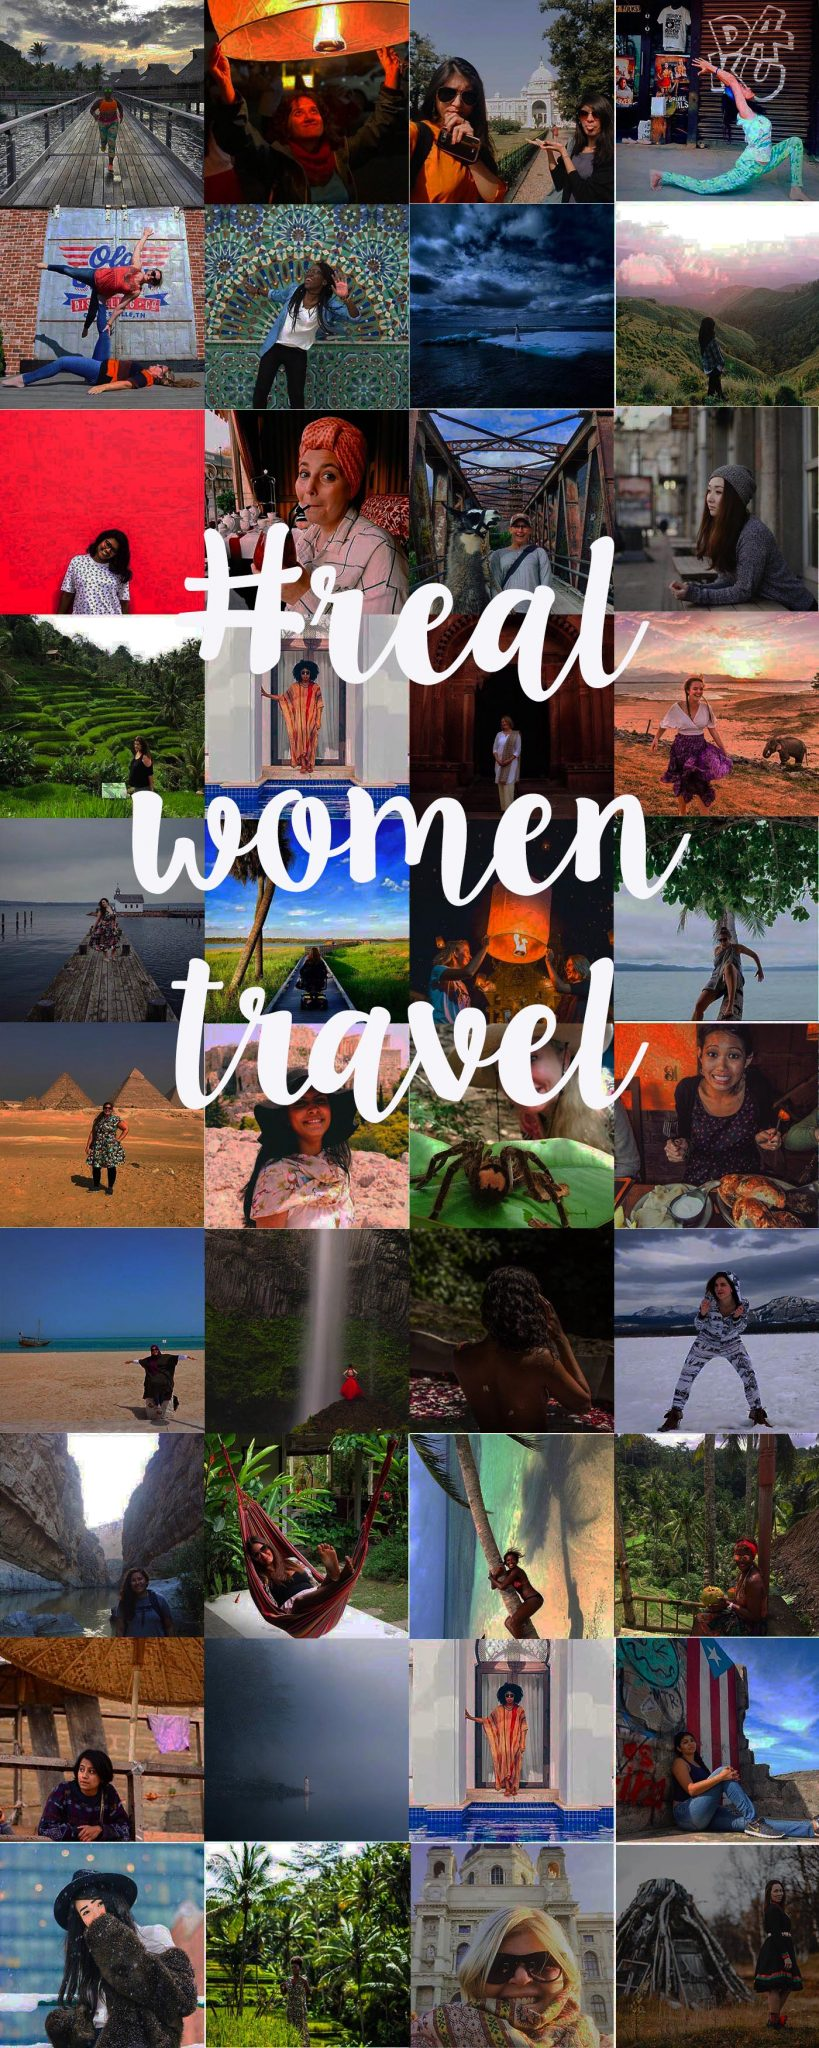 Looking for some different travel inspiration on Instagram? I give you #realwomentravel - a round-up of some kick-ass female travelers to follow and get inspired by. #girlpower #womentravel #femaletraveler